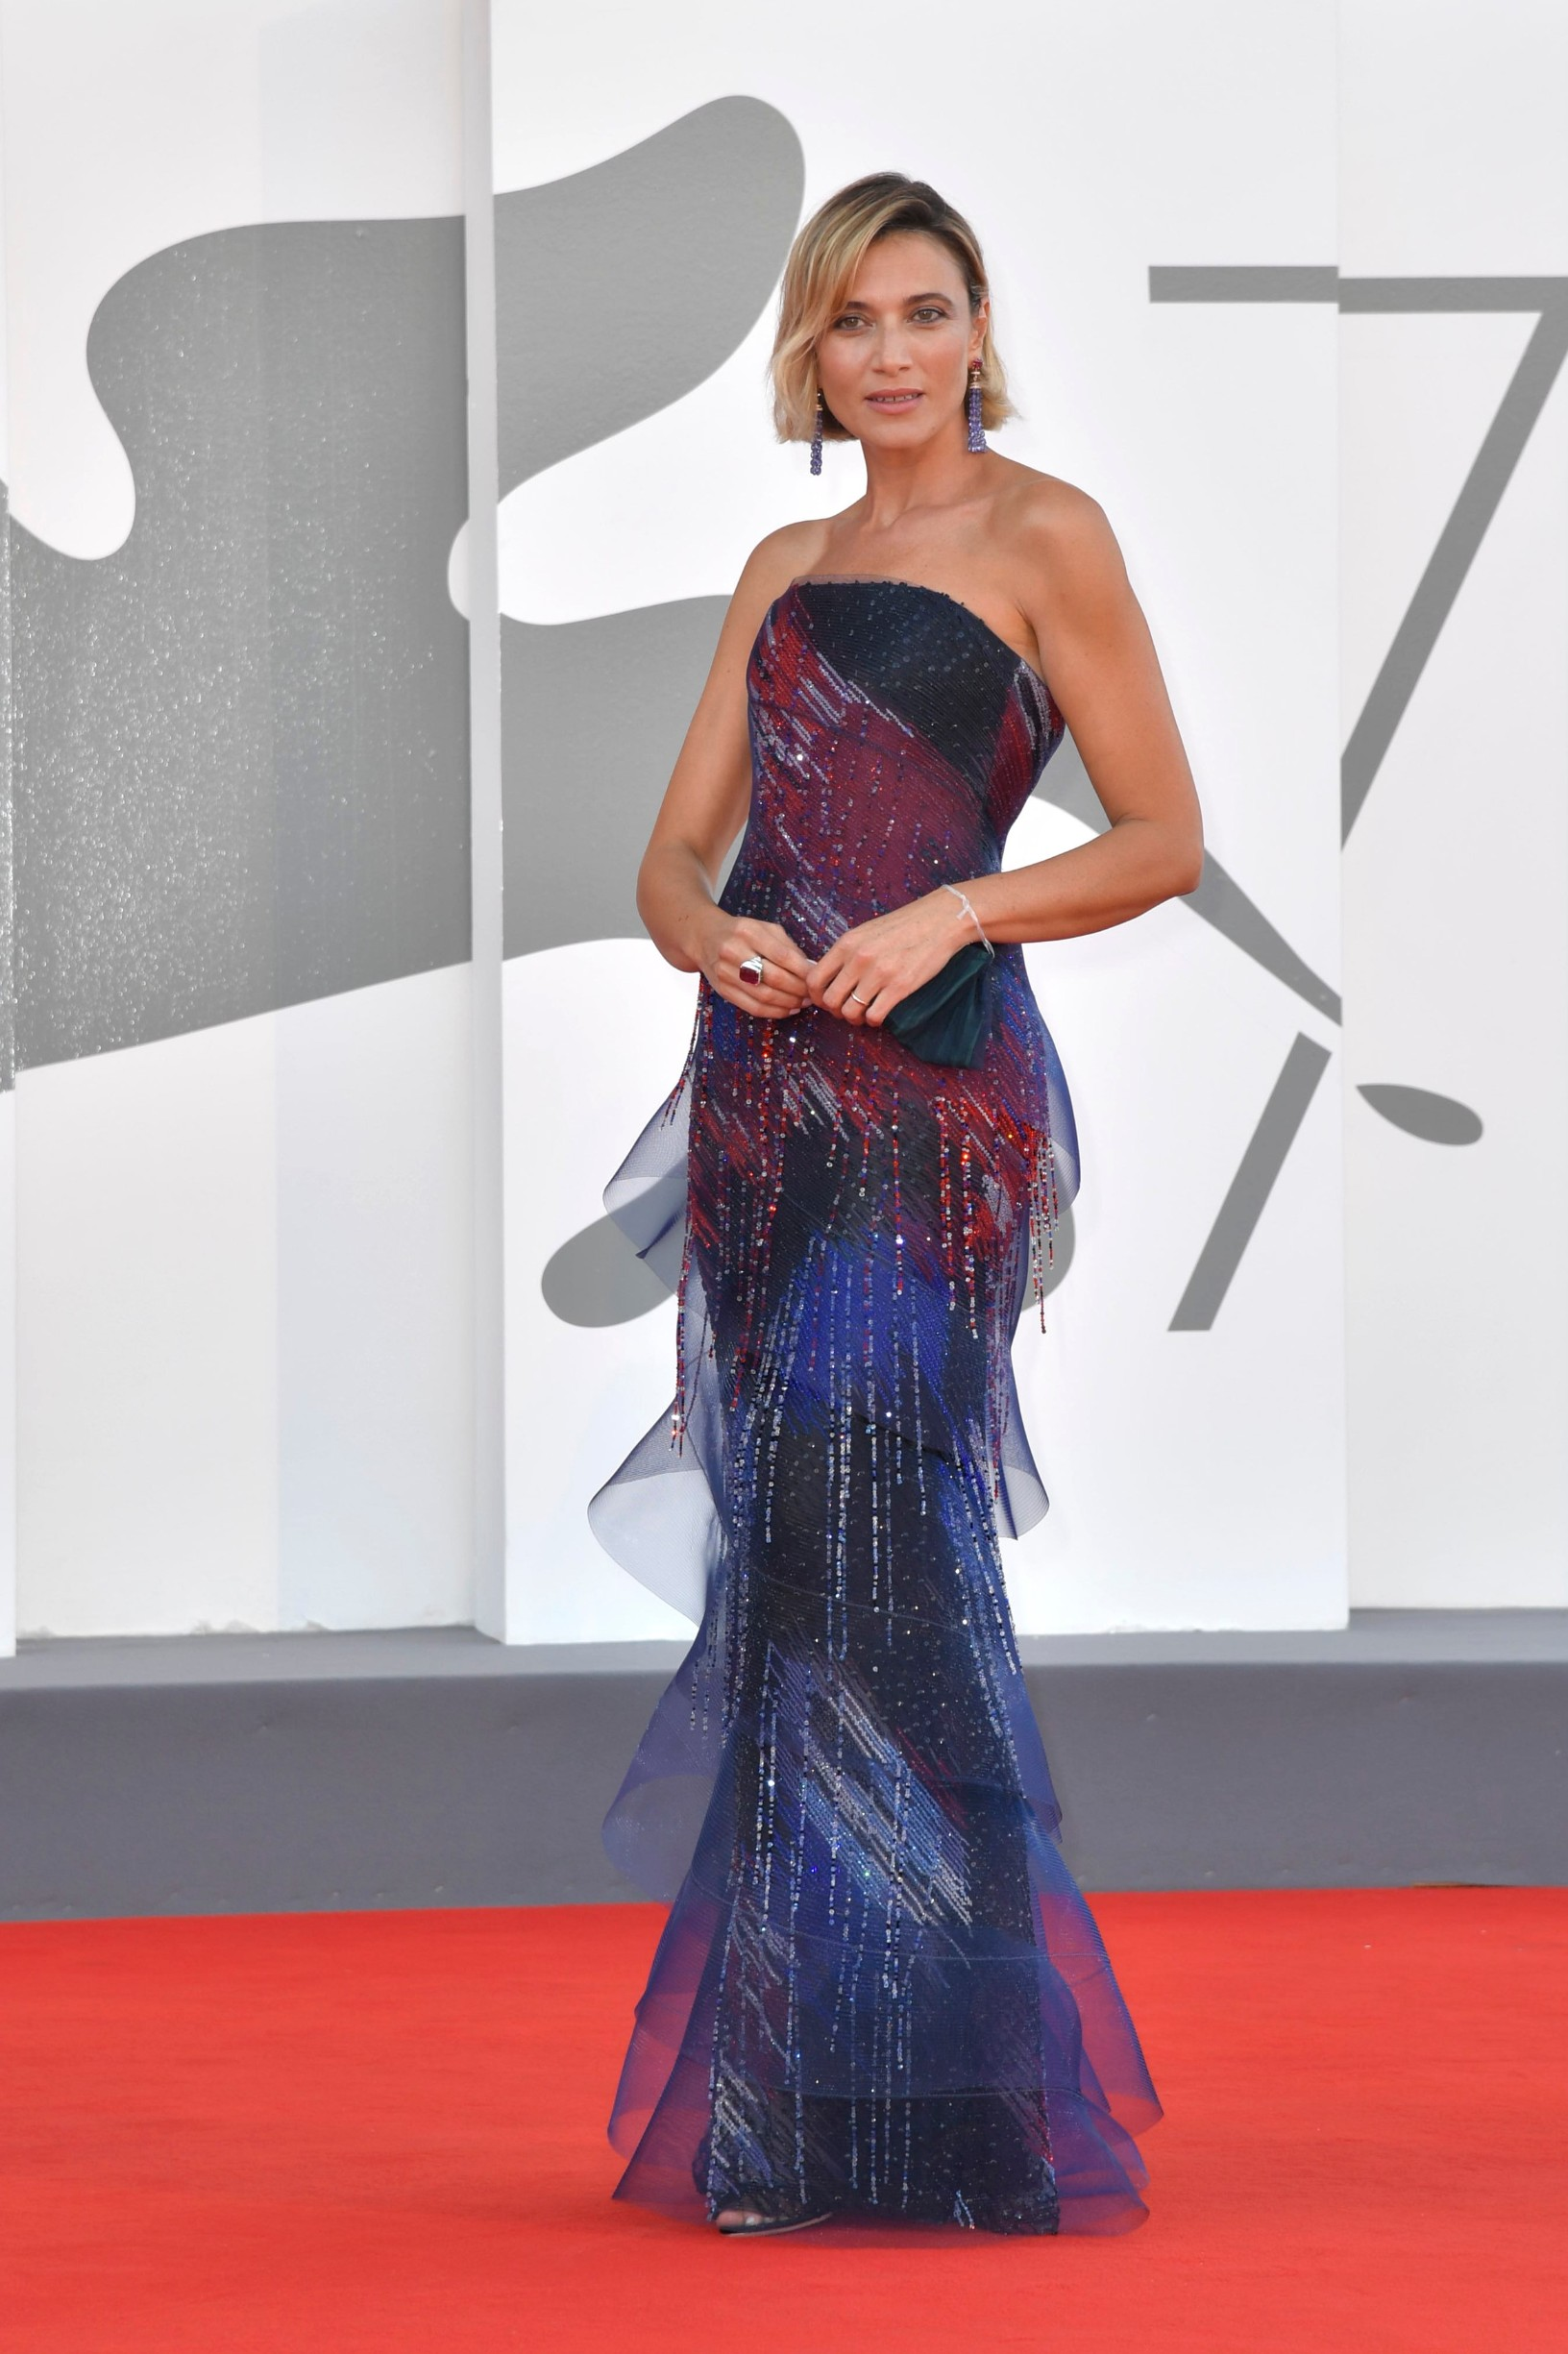 September 13, 2020, Venice, Italy: Anna Foglietta, Closing Carpet, 77th Venice International Film Festival, Venice, Italy, September 12, 2020. Photo by Ron Crusow/imageSPACE,Image: 557701177, License: Rights-managed, Restrictions: , Model Release: no, Credit line: Imagespace / Zuma Press / Profimedia